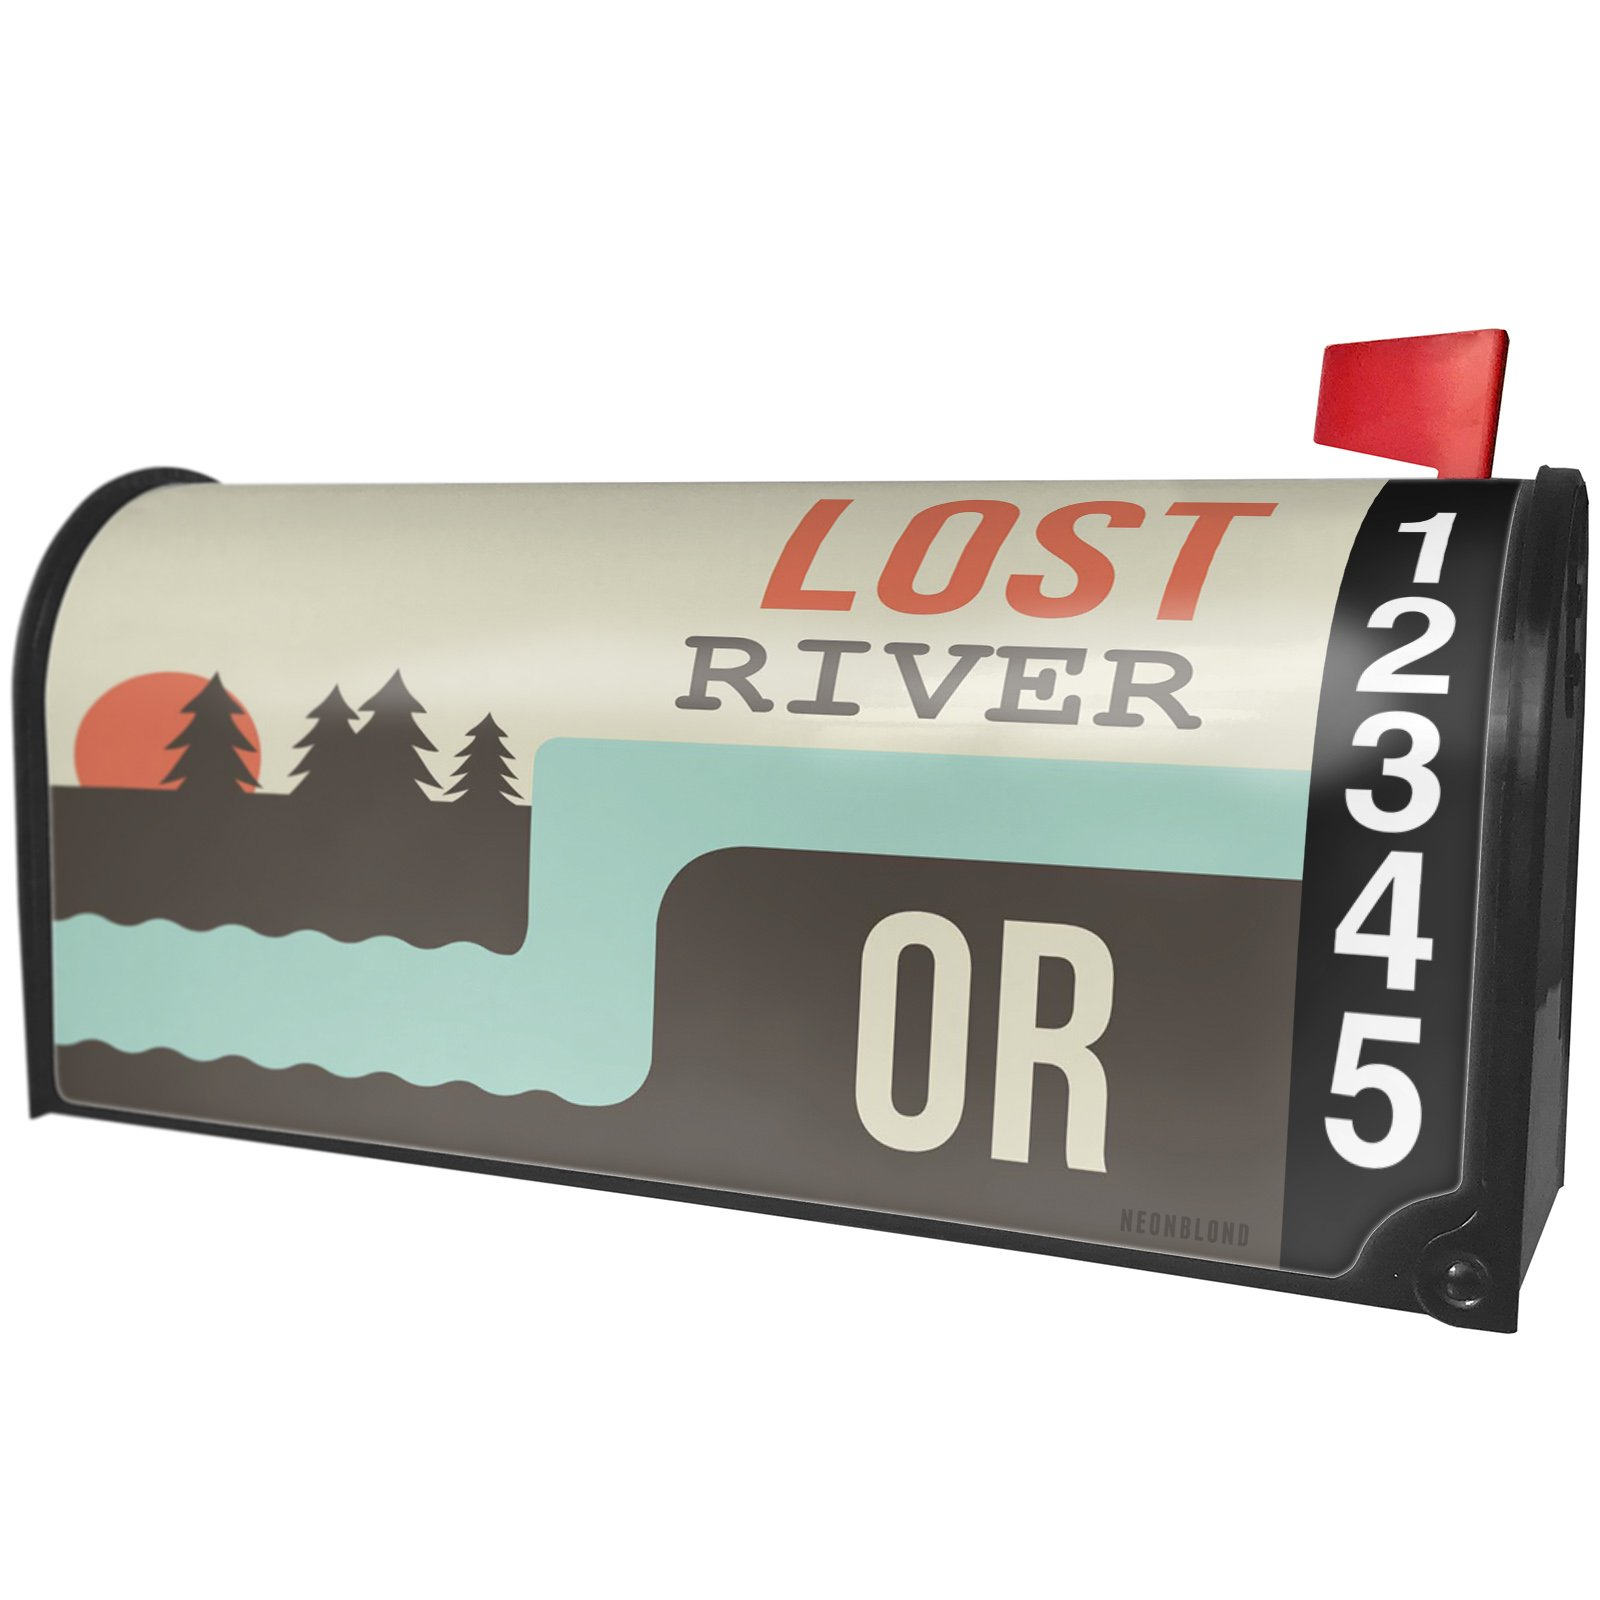 NEONBLOND USA Rivers Lost River - Oregon Magnetic Mailbox Cover Custom Numbers